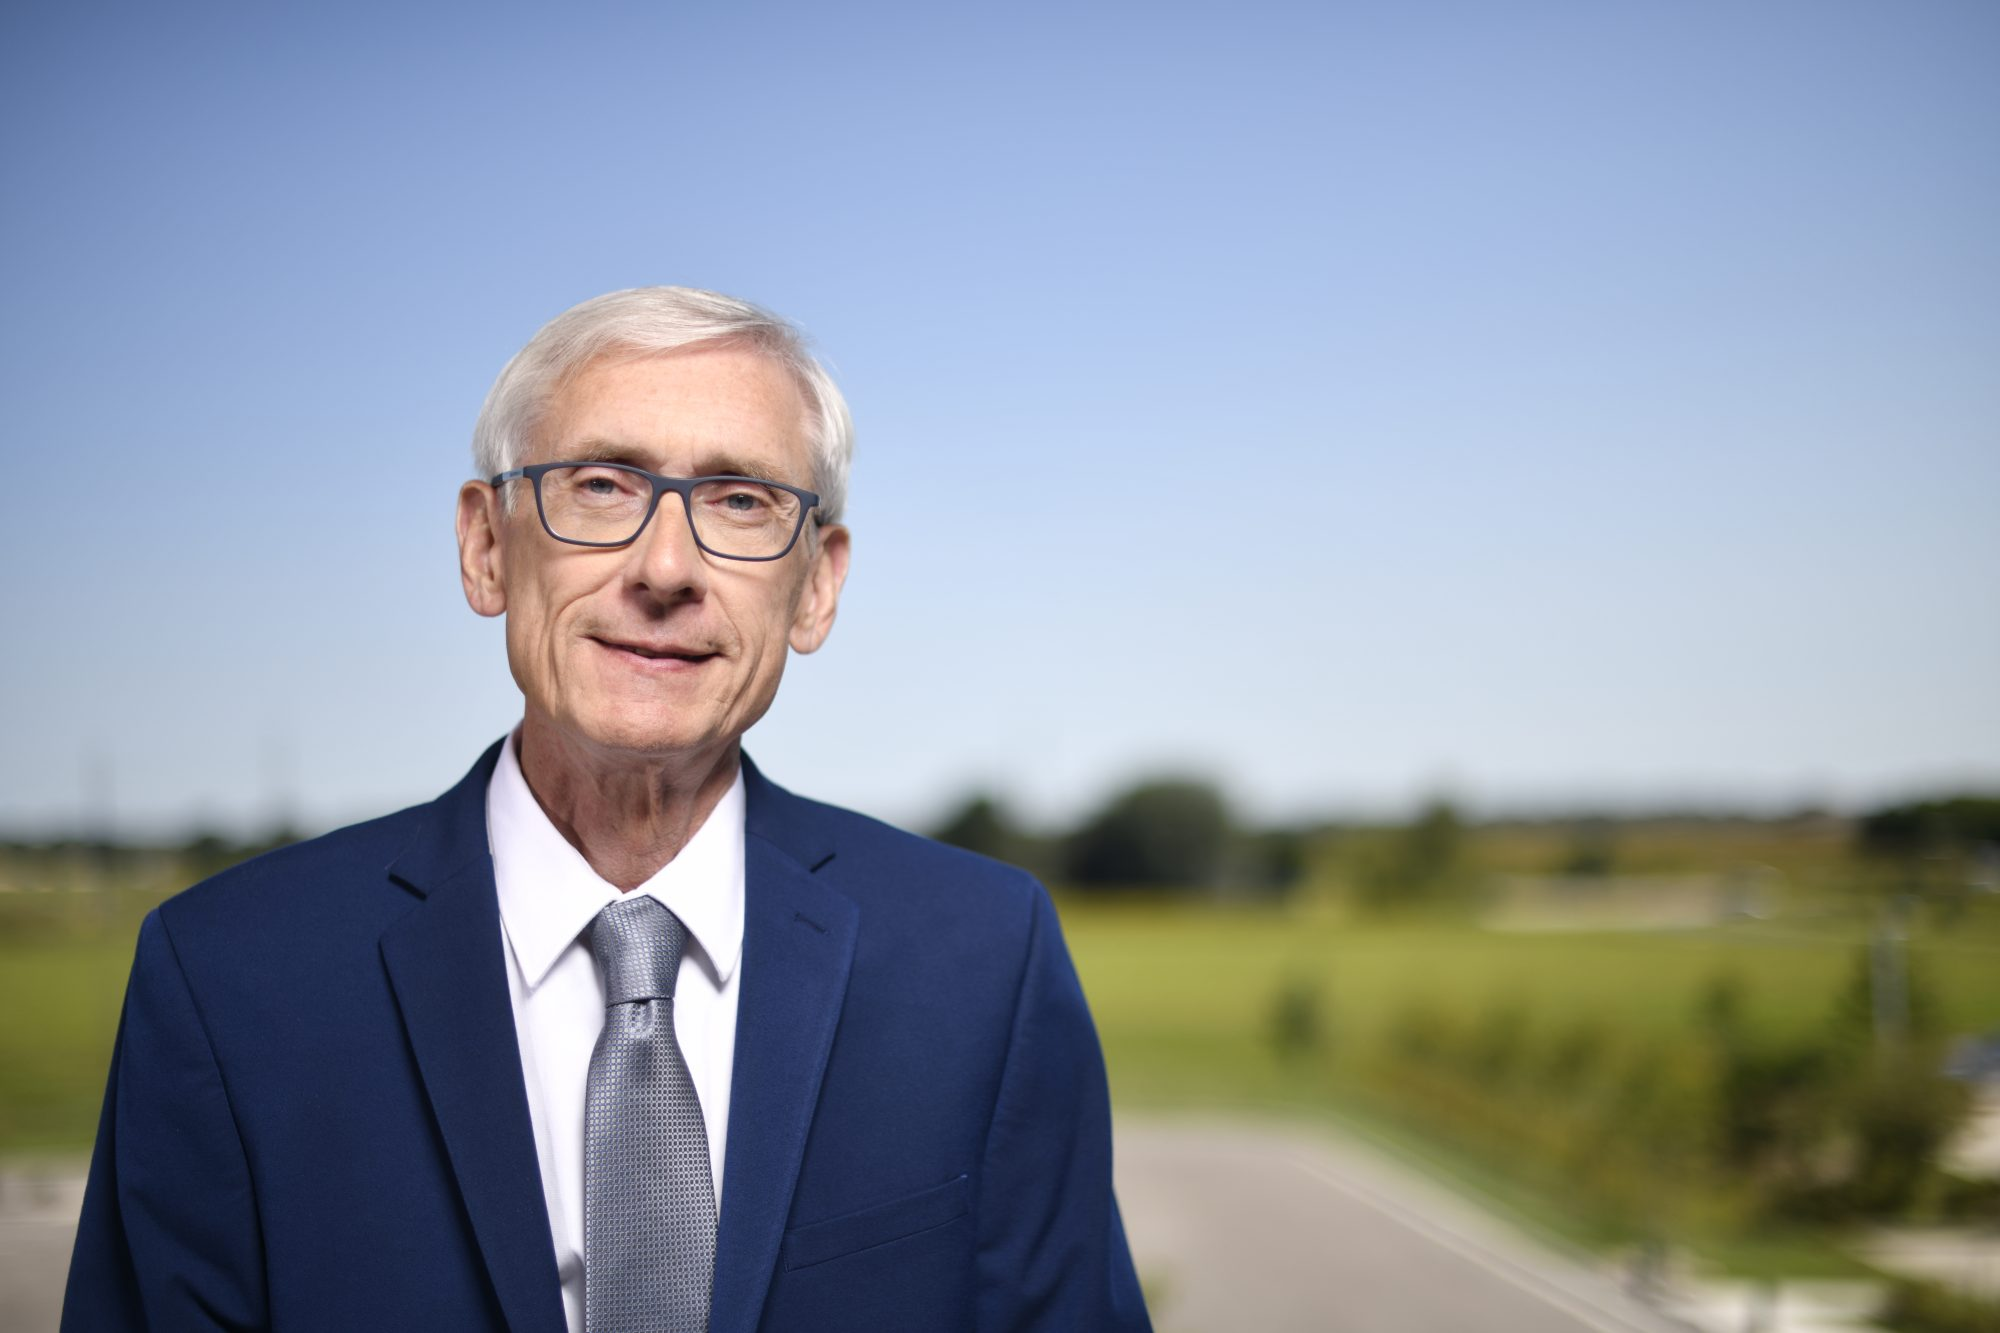 Gov. Evers Orders Flags to Half-Staff to Honor the More Than 6,300 Wisconsinites and 500,000 Americans Lost to COVID-19